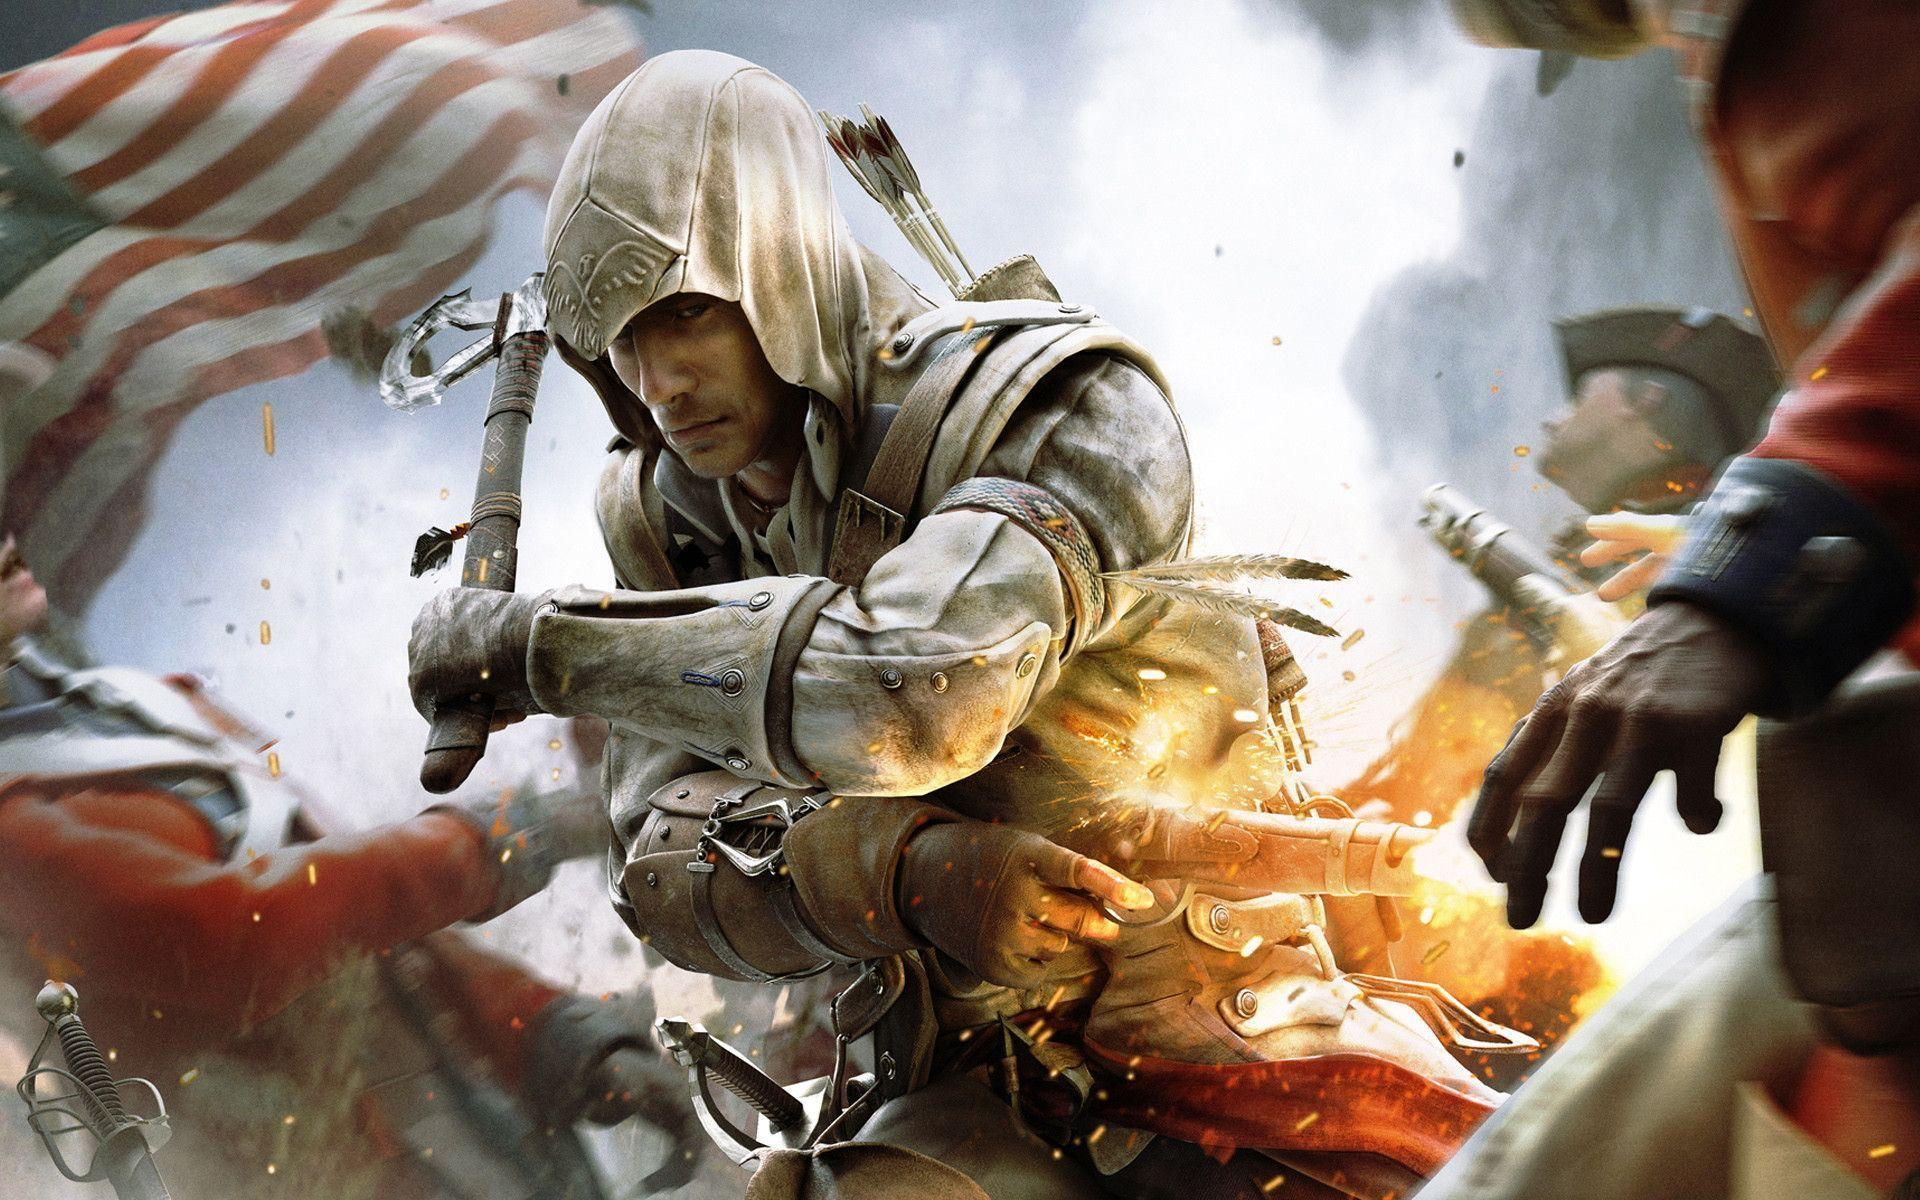 Assassins creed 3 wallpapers wallpaper cave assassins creed 3 wallpapers full hd wallpaper search voltagebd Choice Image